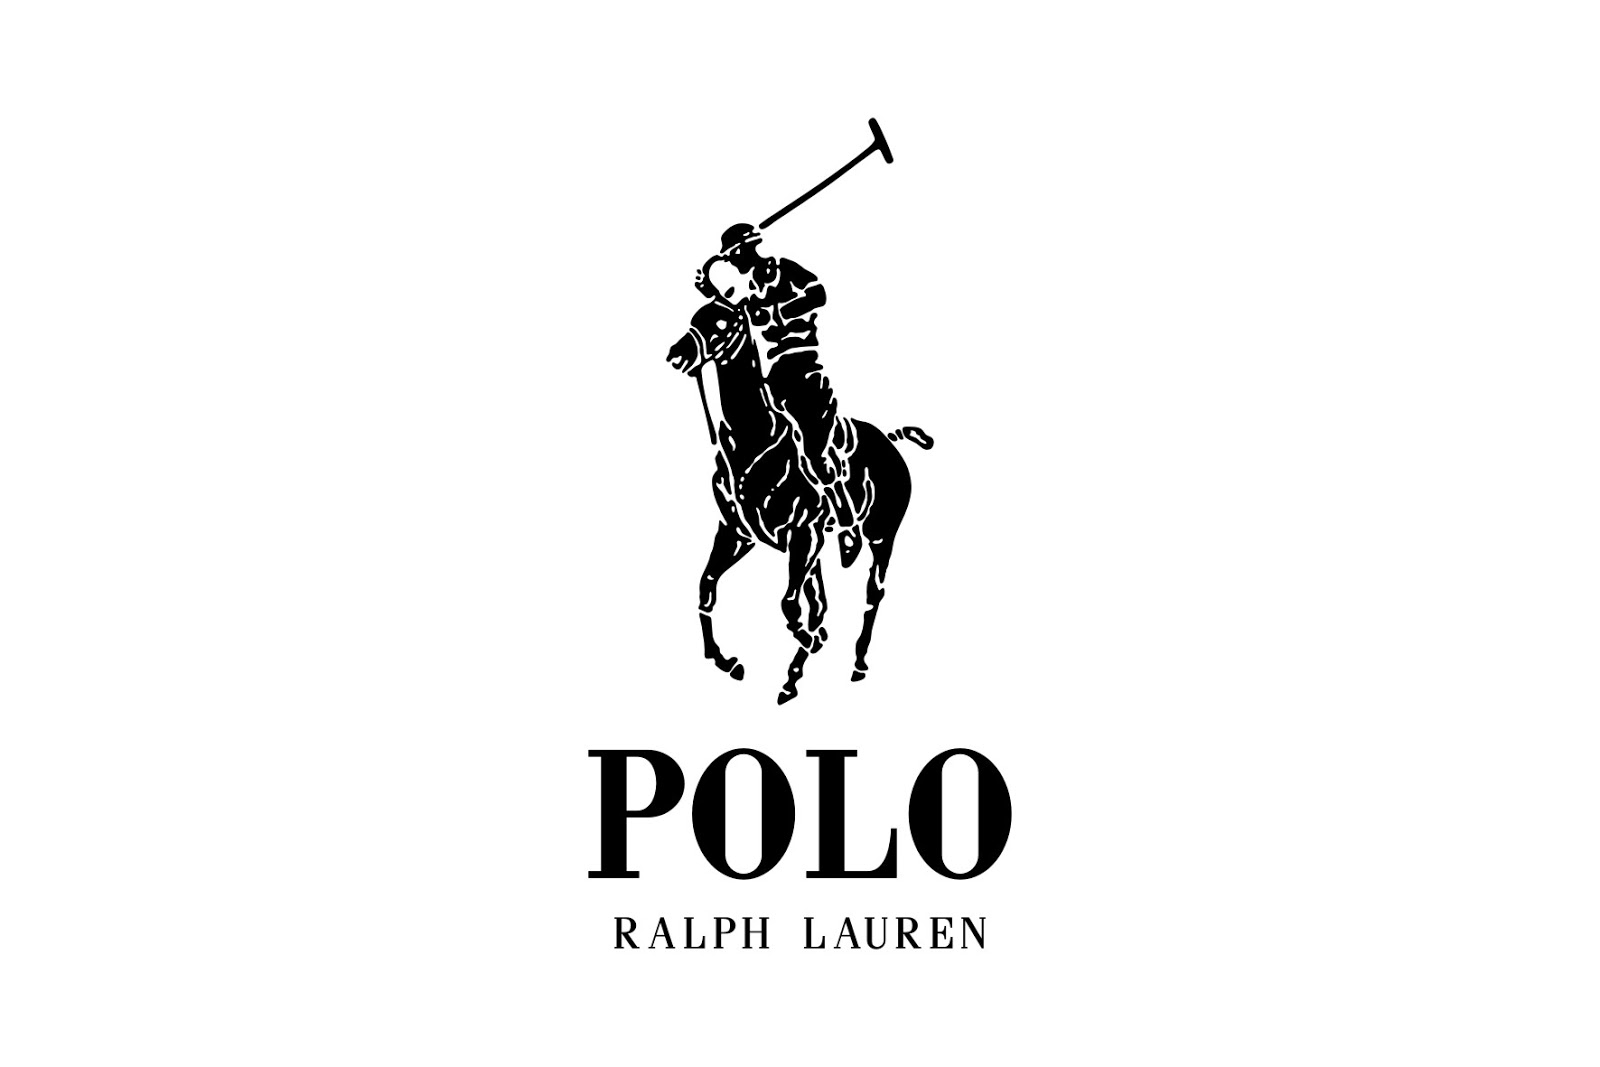 Ralph Lauren polo logo Wallpaper